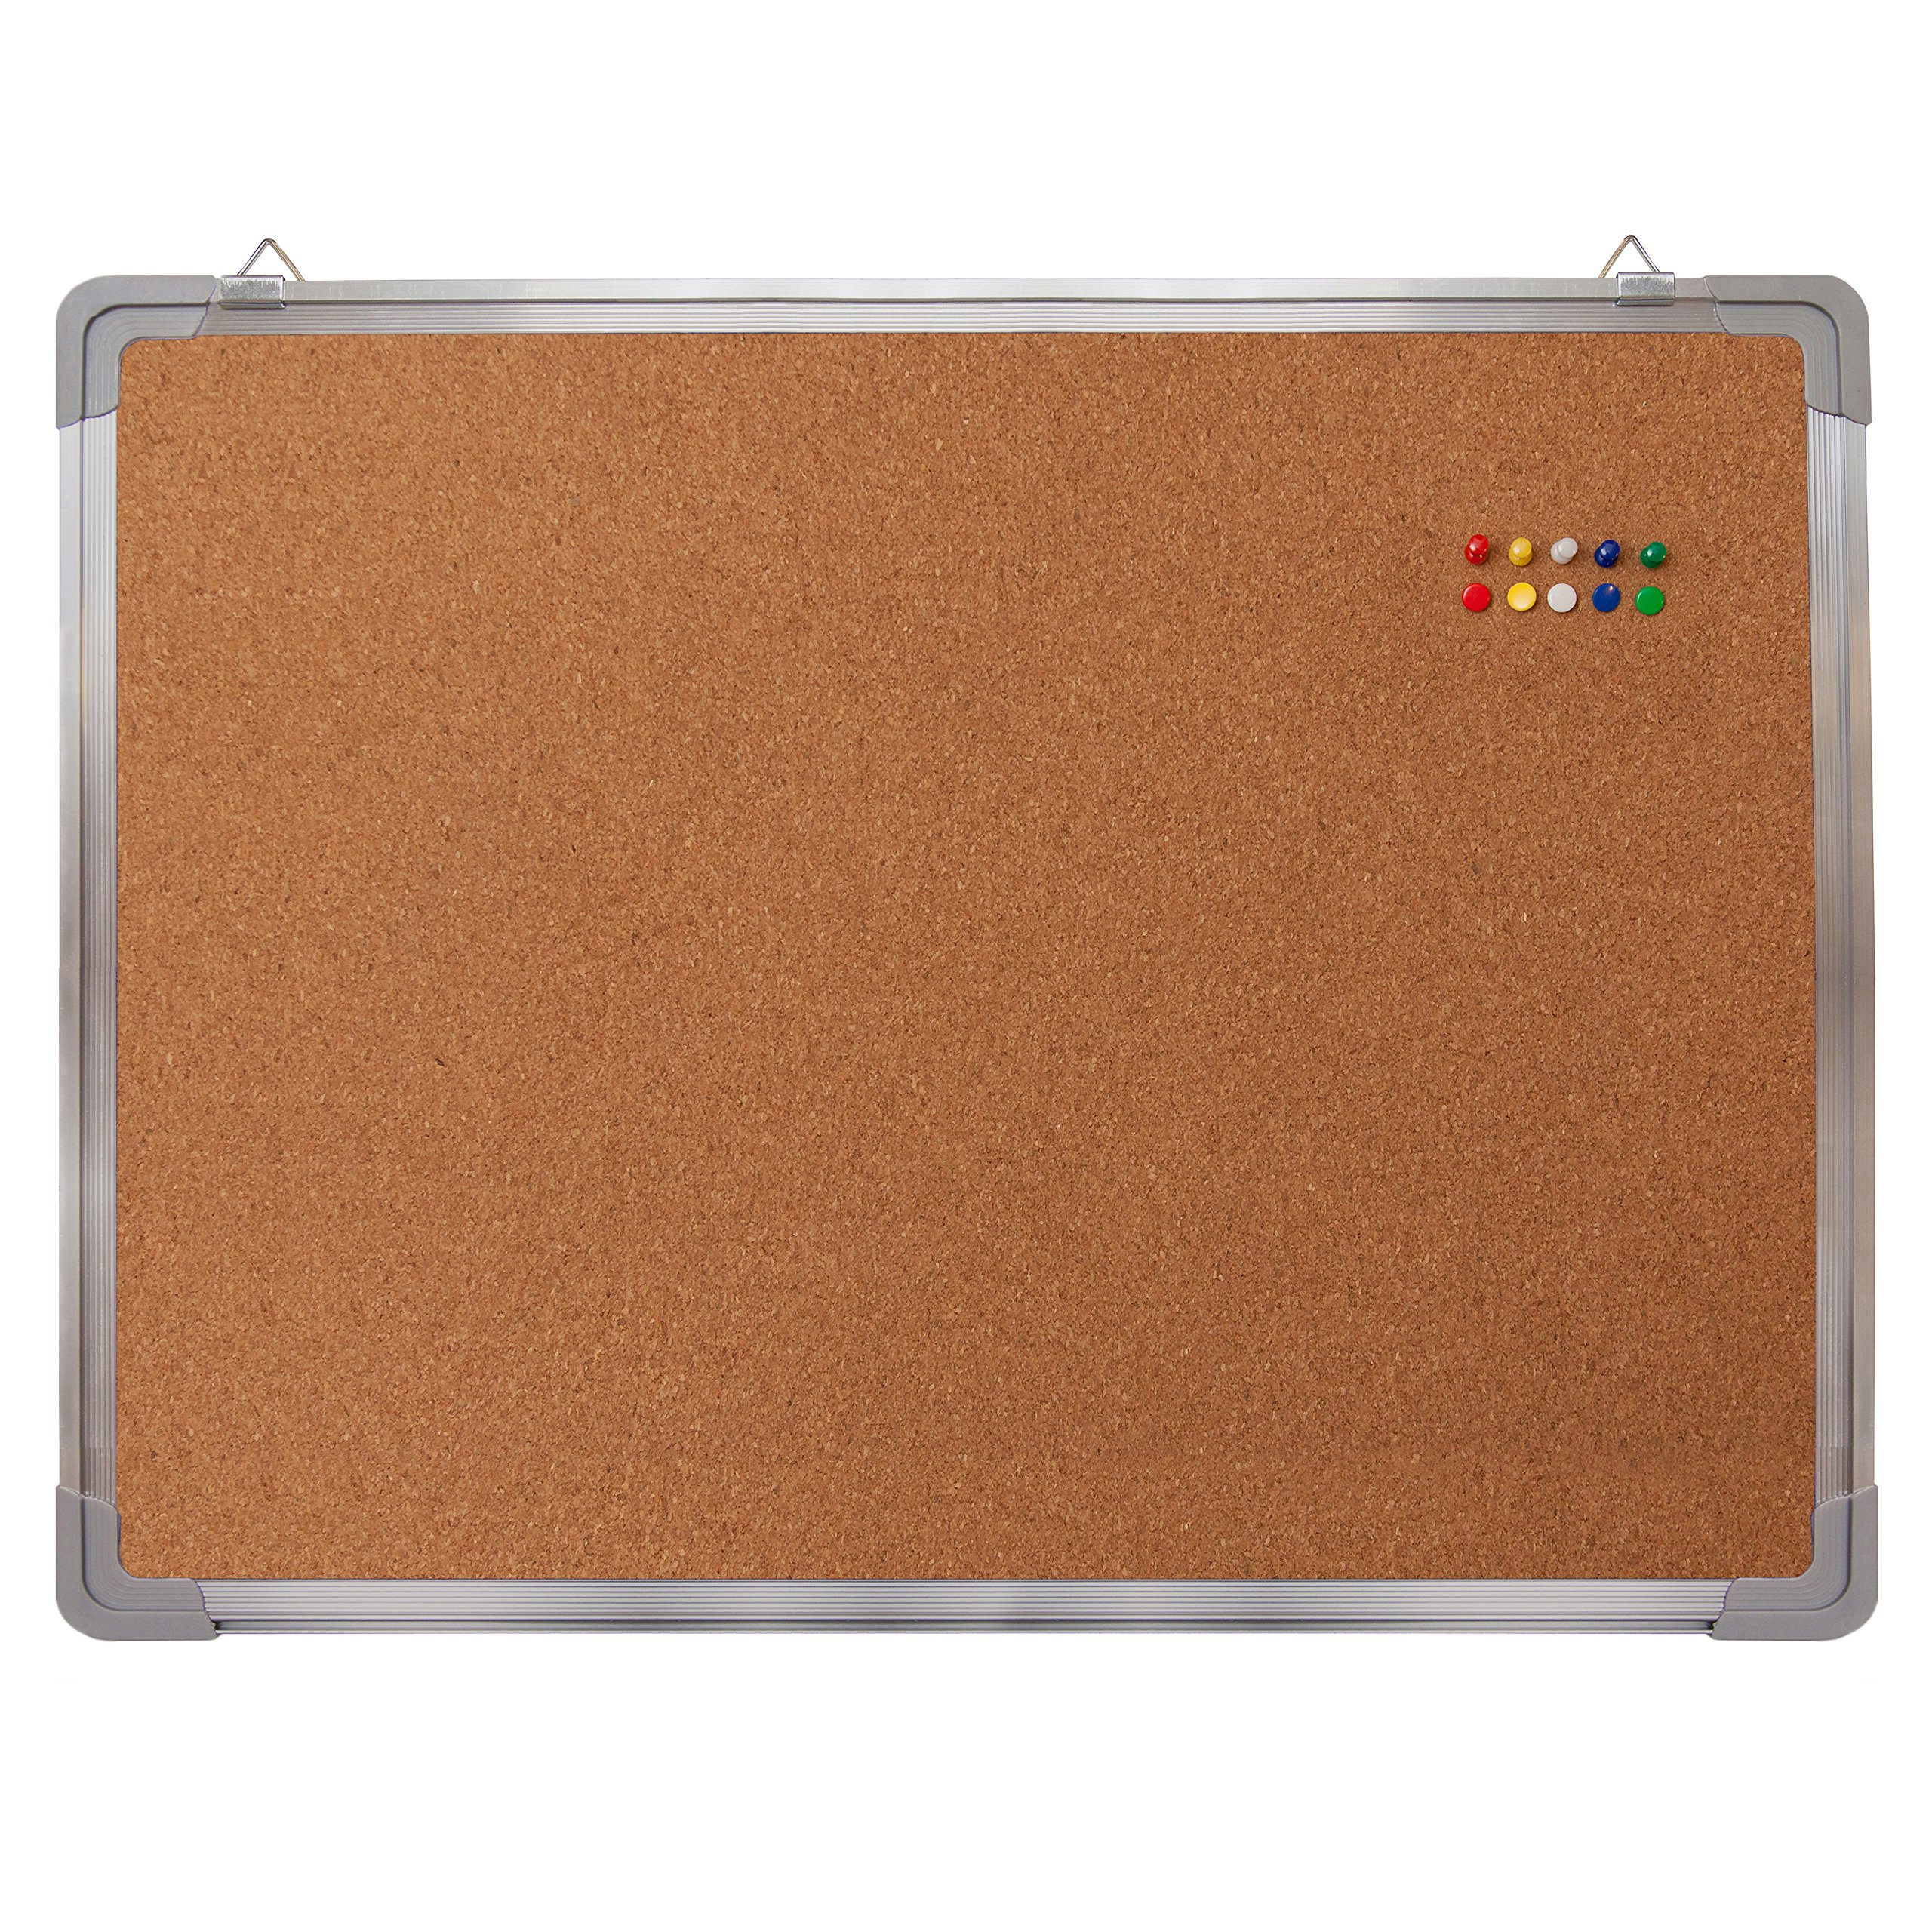 Bulletin Board Set - Cork Board 24 x 18'' + 10 Color Pins - Small Wall Hanging Tack Message Memo Picture Board for Home Office School Cubicle - Presentation, Display and Planning (Cork 24x18'')